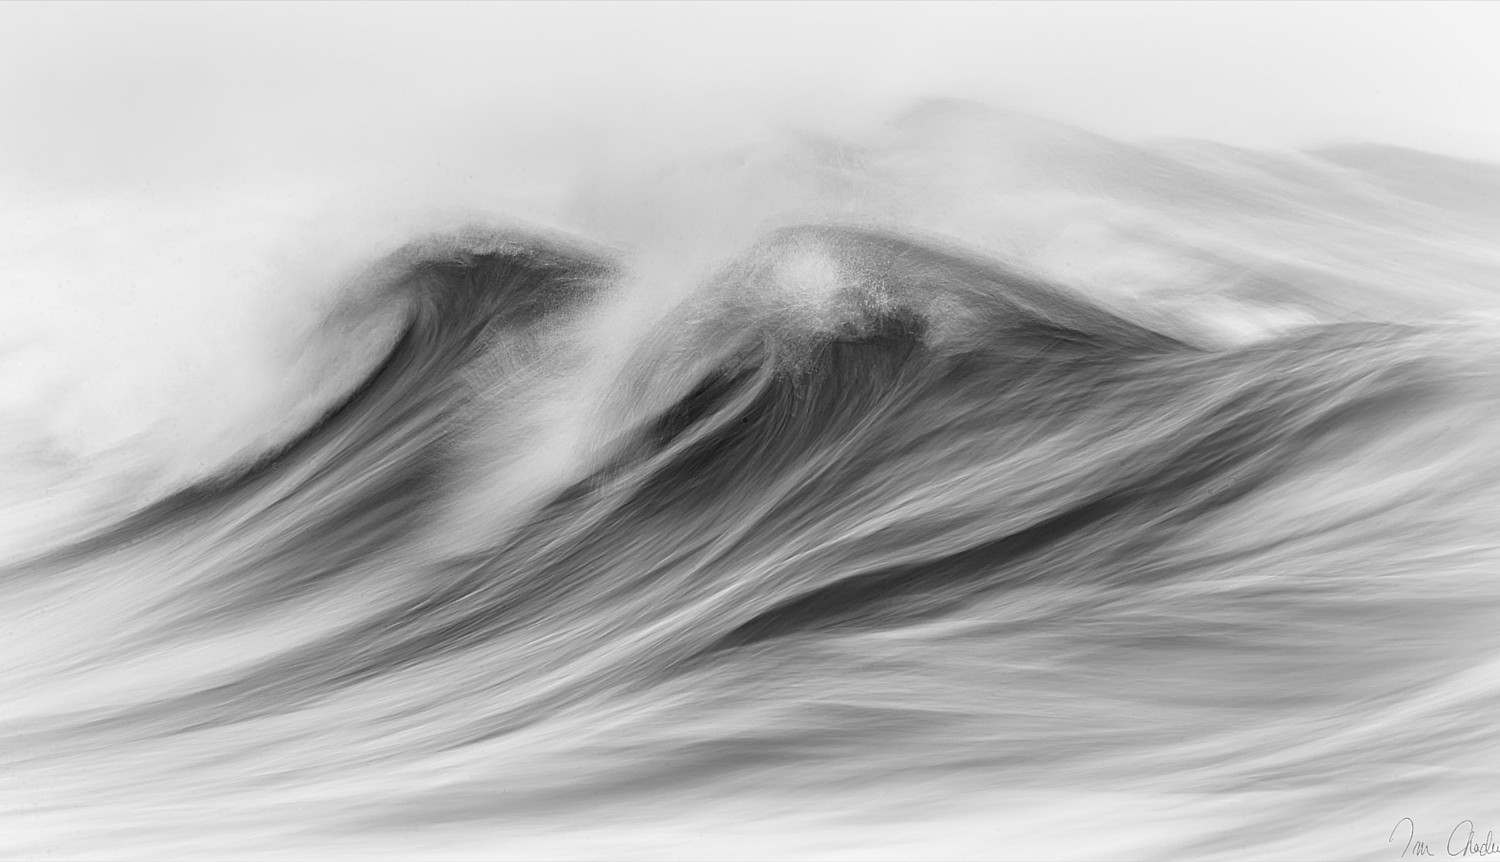 These Beautiful Black and White Photos of Waves Breaking Look Like Impressionist Paintings